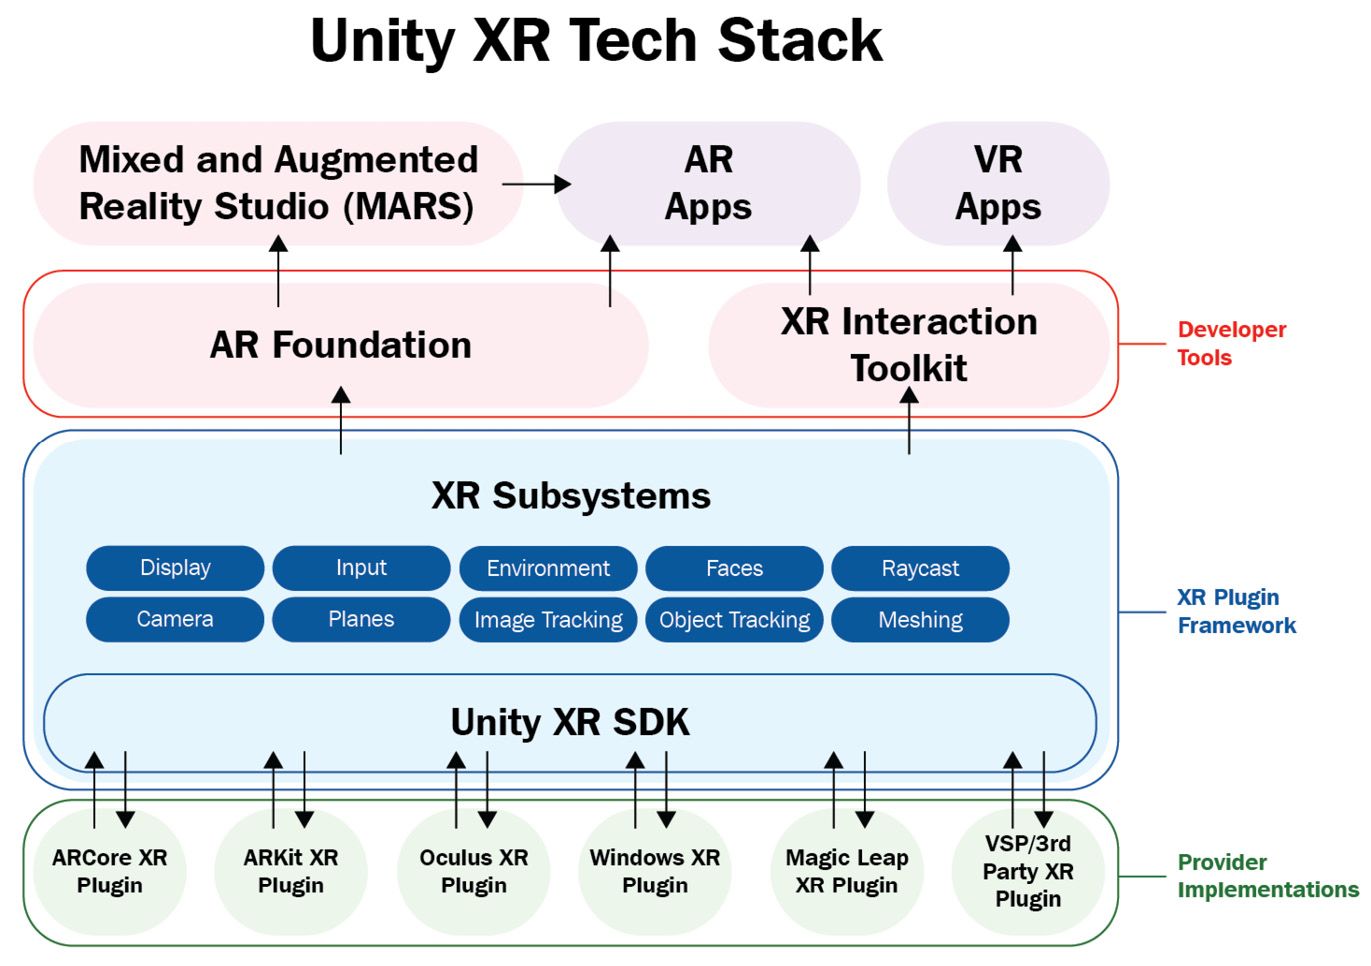 Figure 1.8 – The Unity XR tech stack